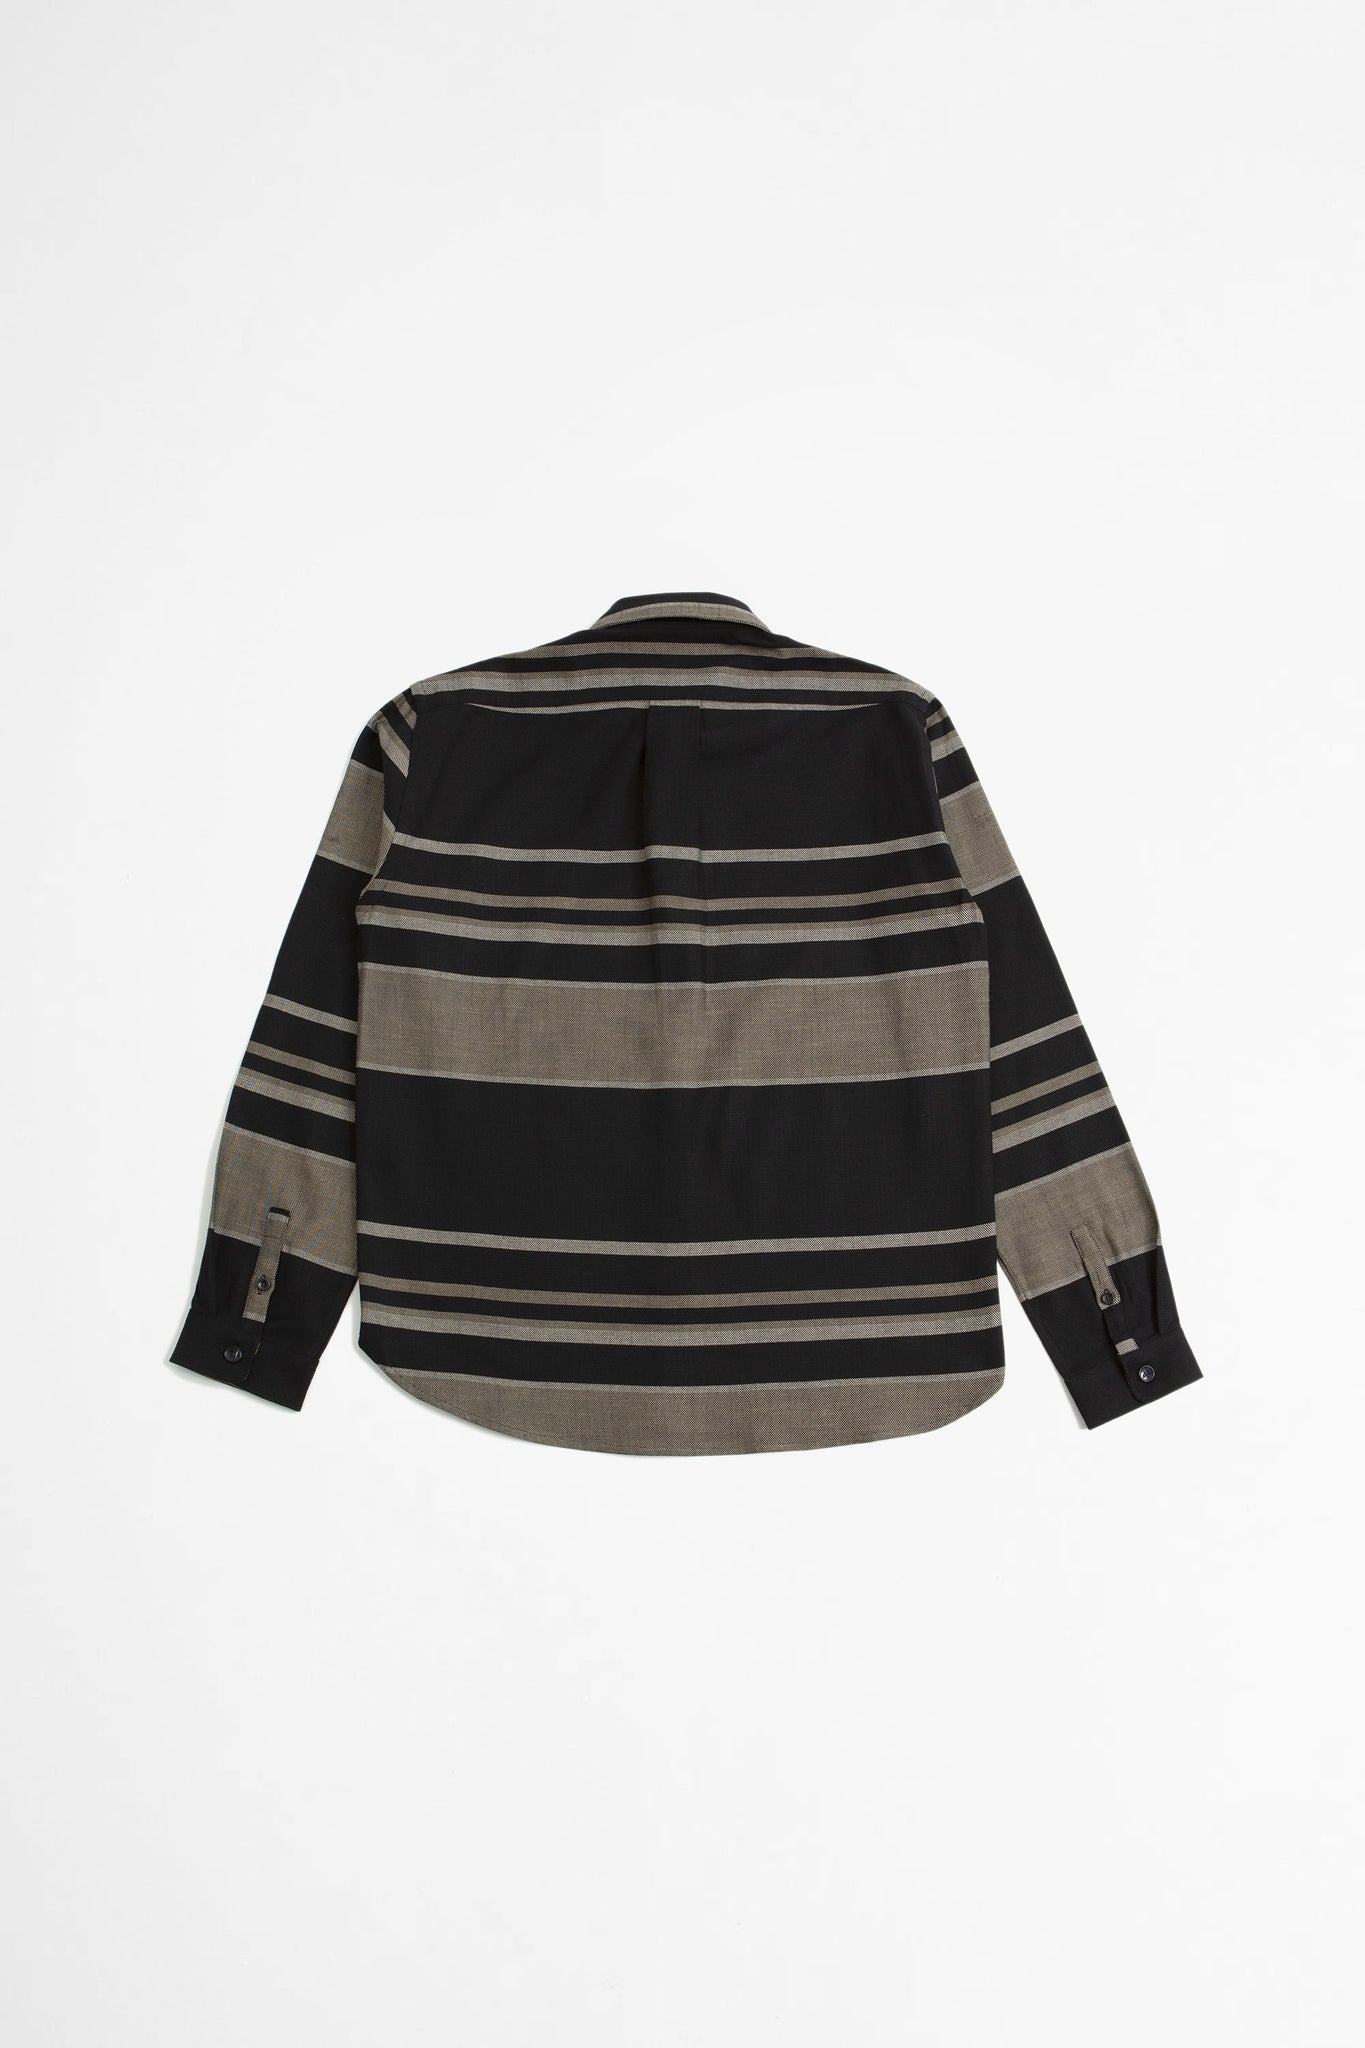 Babylon shirt black stripe